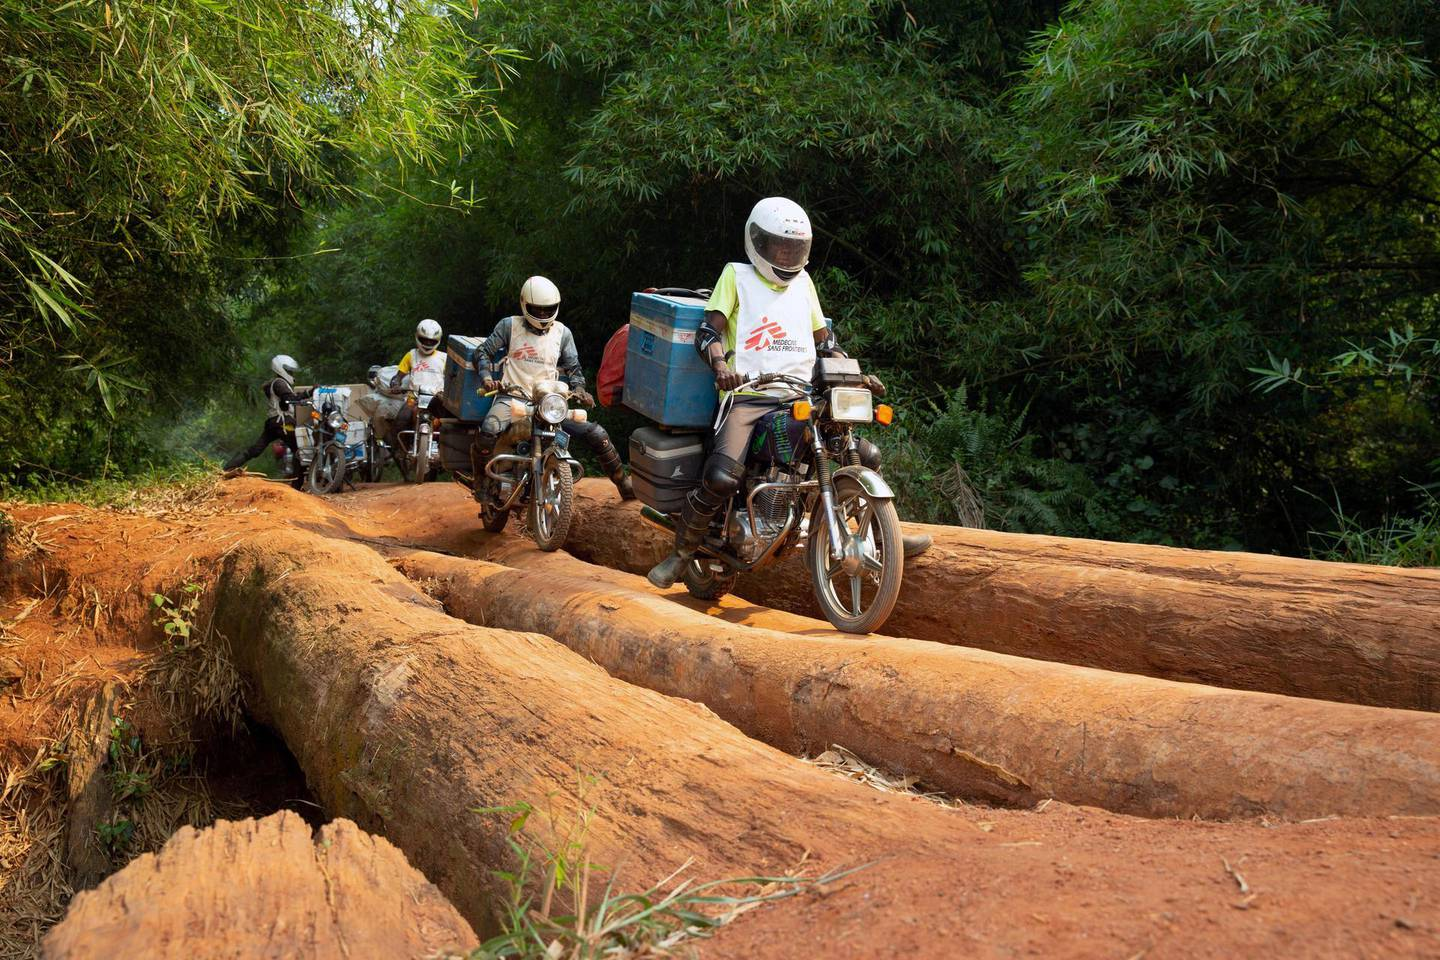 FILE PHOTO: A motorcycle convoy carrying vials of measles vaccine and other supplies for medial NGO Doctors Without Borders (MSF) crosses a log bridge on a road between Lisala and Boso-Manzi in Mongala province in the Democratic Republic of Congo February 27, 2020. Picture taken February 27, 2020. REUTERS/Hereward Holland/File Photo